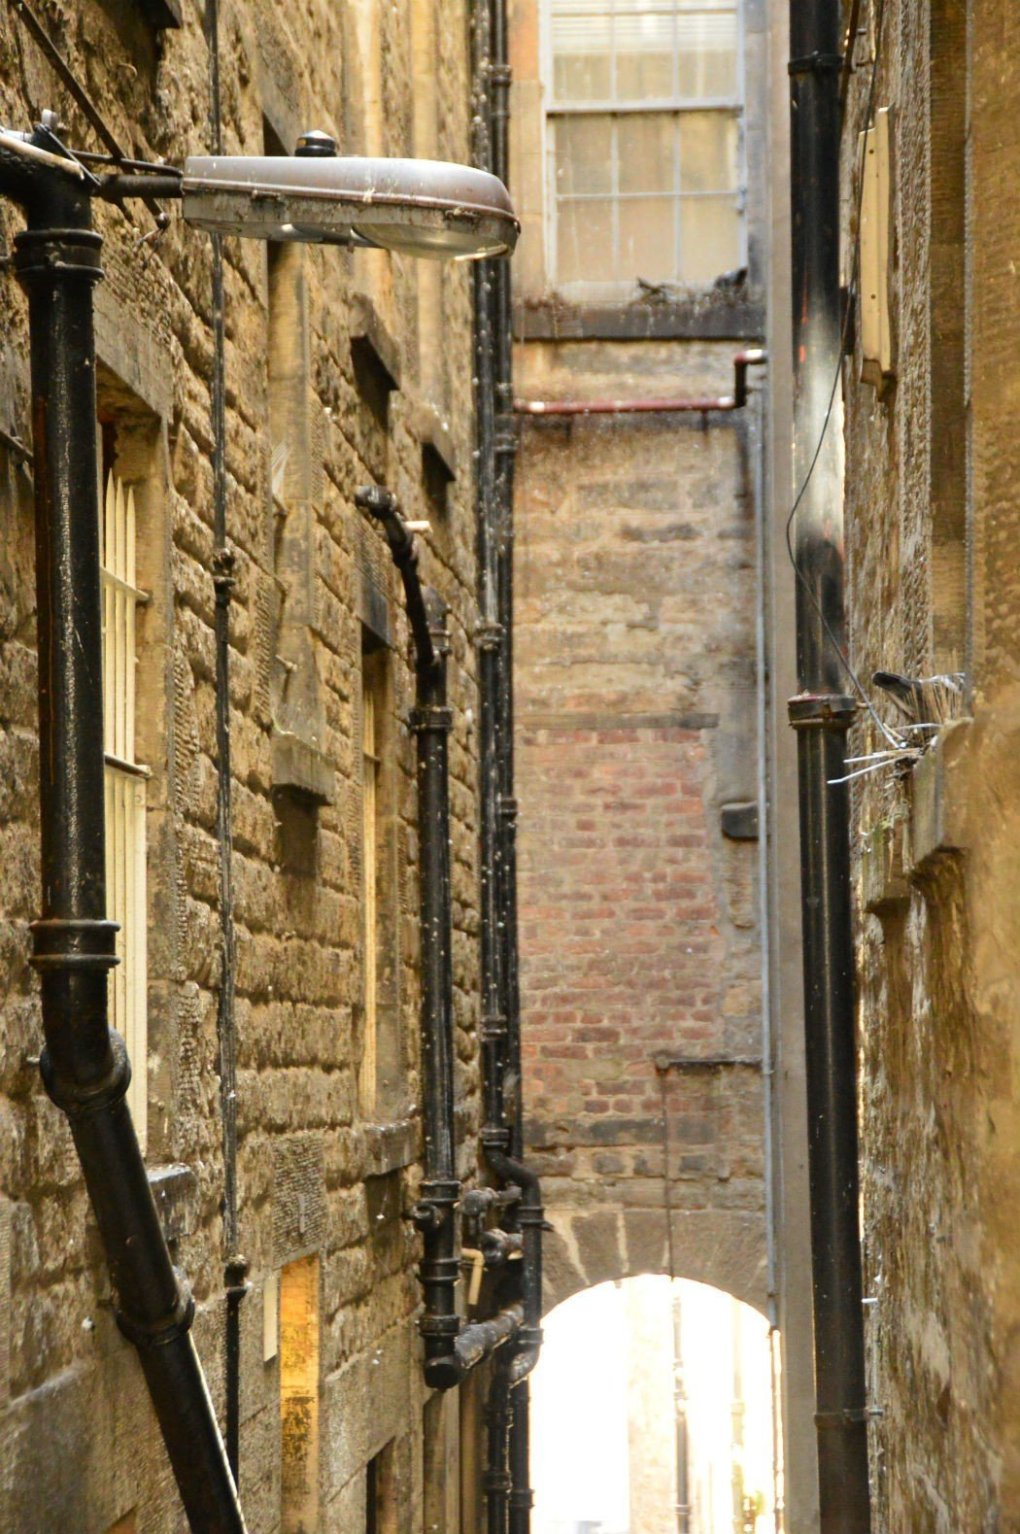 narrow alley way in edinburgh with a declining staircase